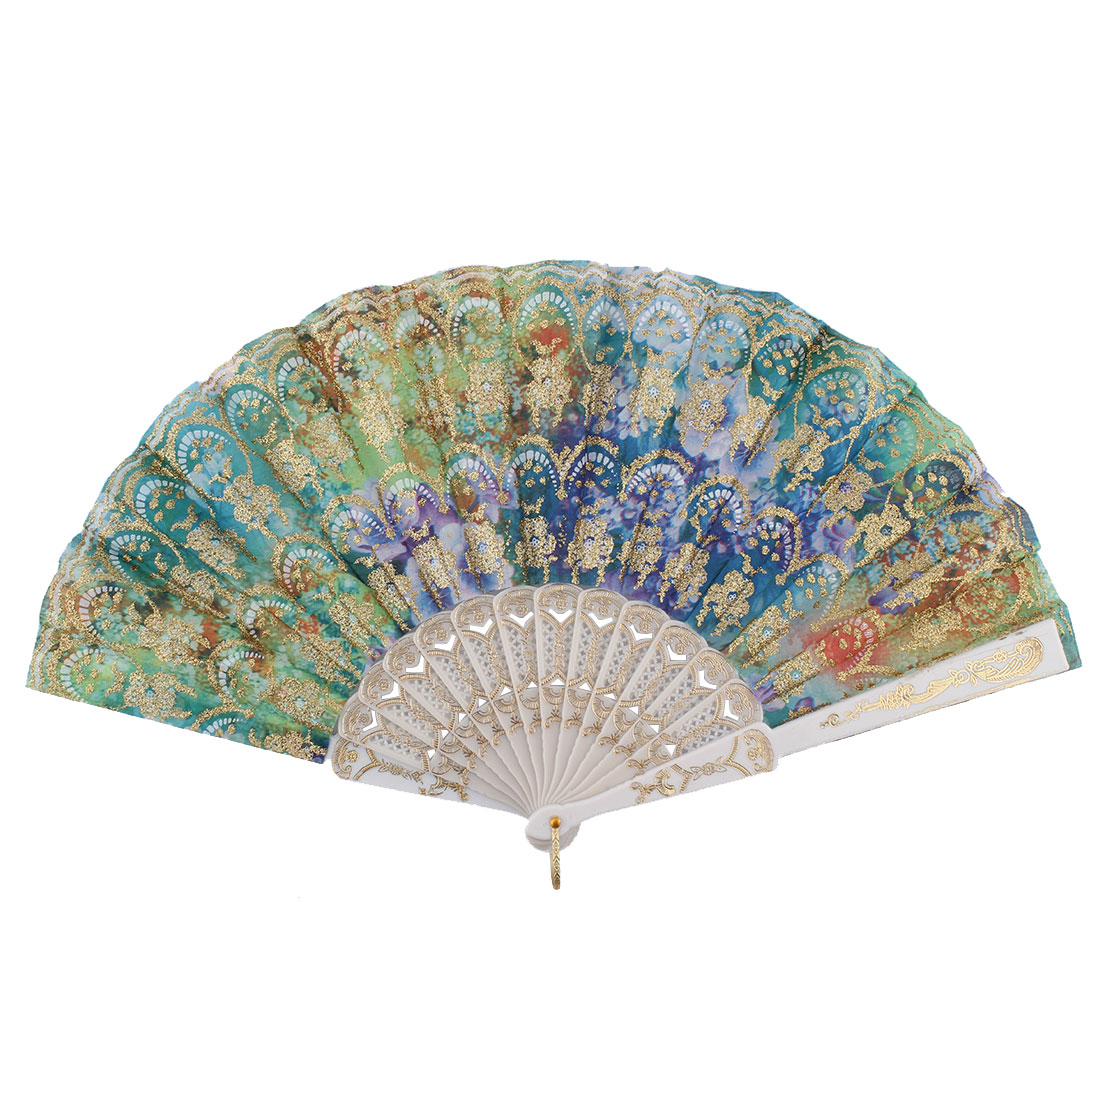 Chinese Style Ladies Colorful Flower Pattern Plastic Ribs Frame Summer Folding Hand Fan